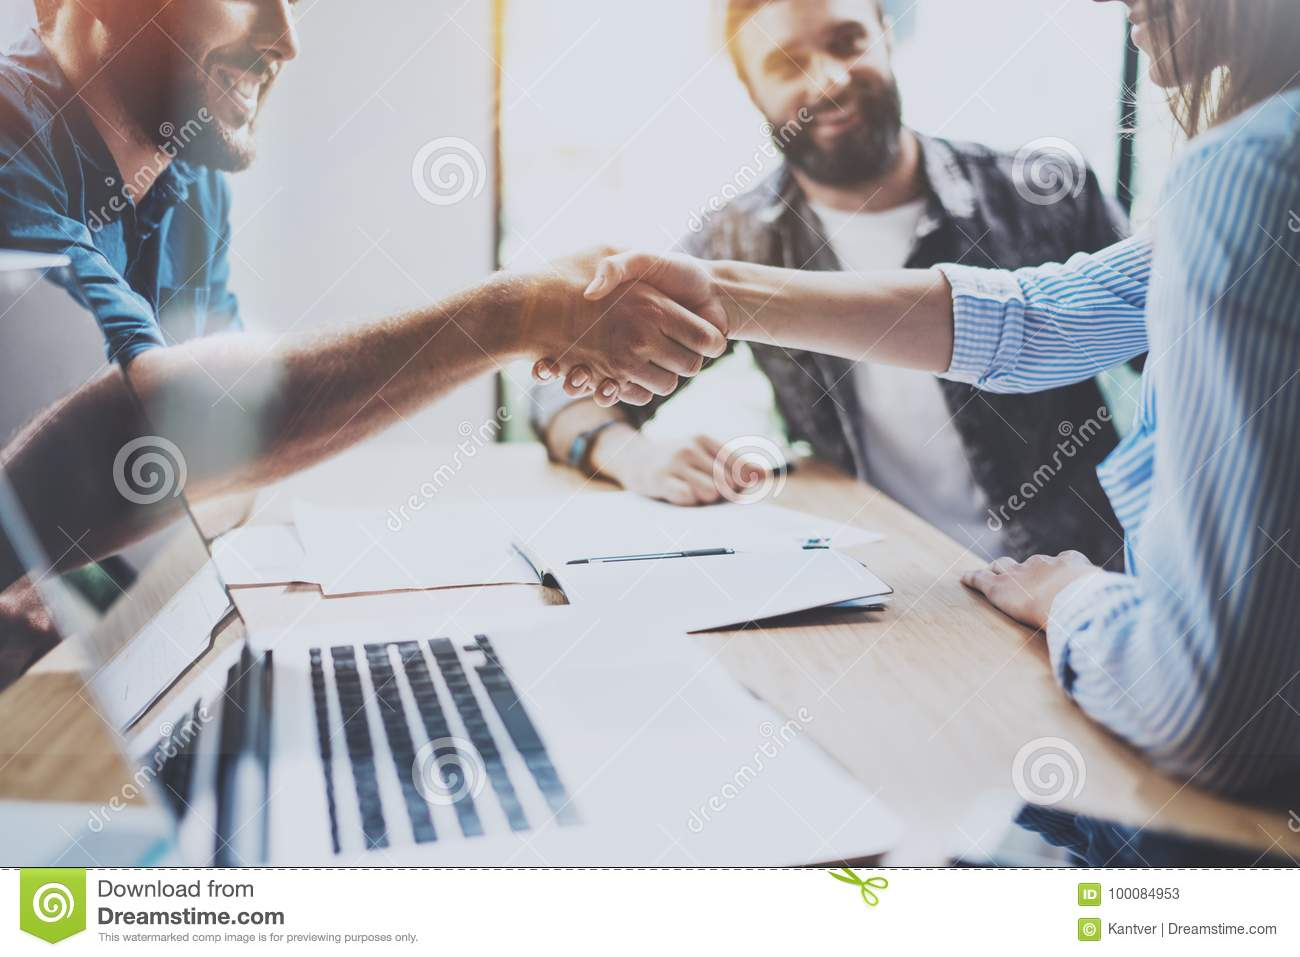 Business partnership handshake concept.Photo coworkers handshaking process.Successful deal after great meeting